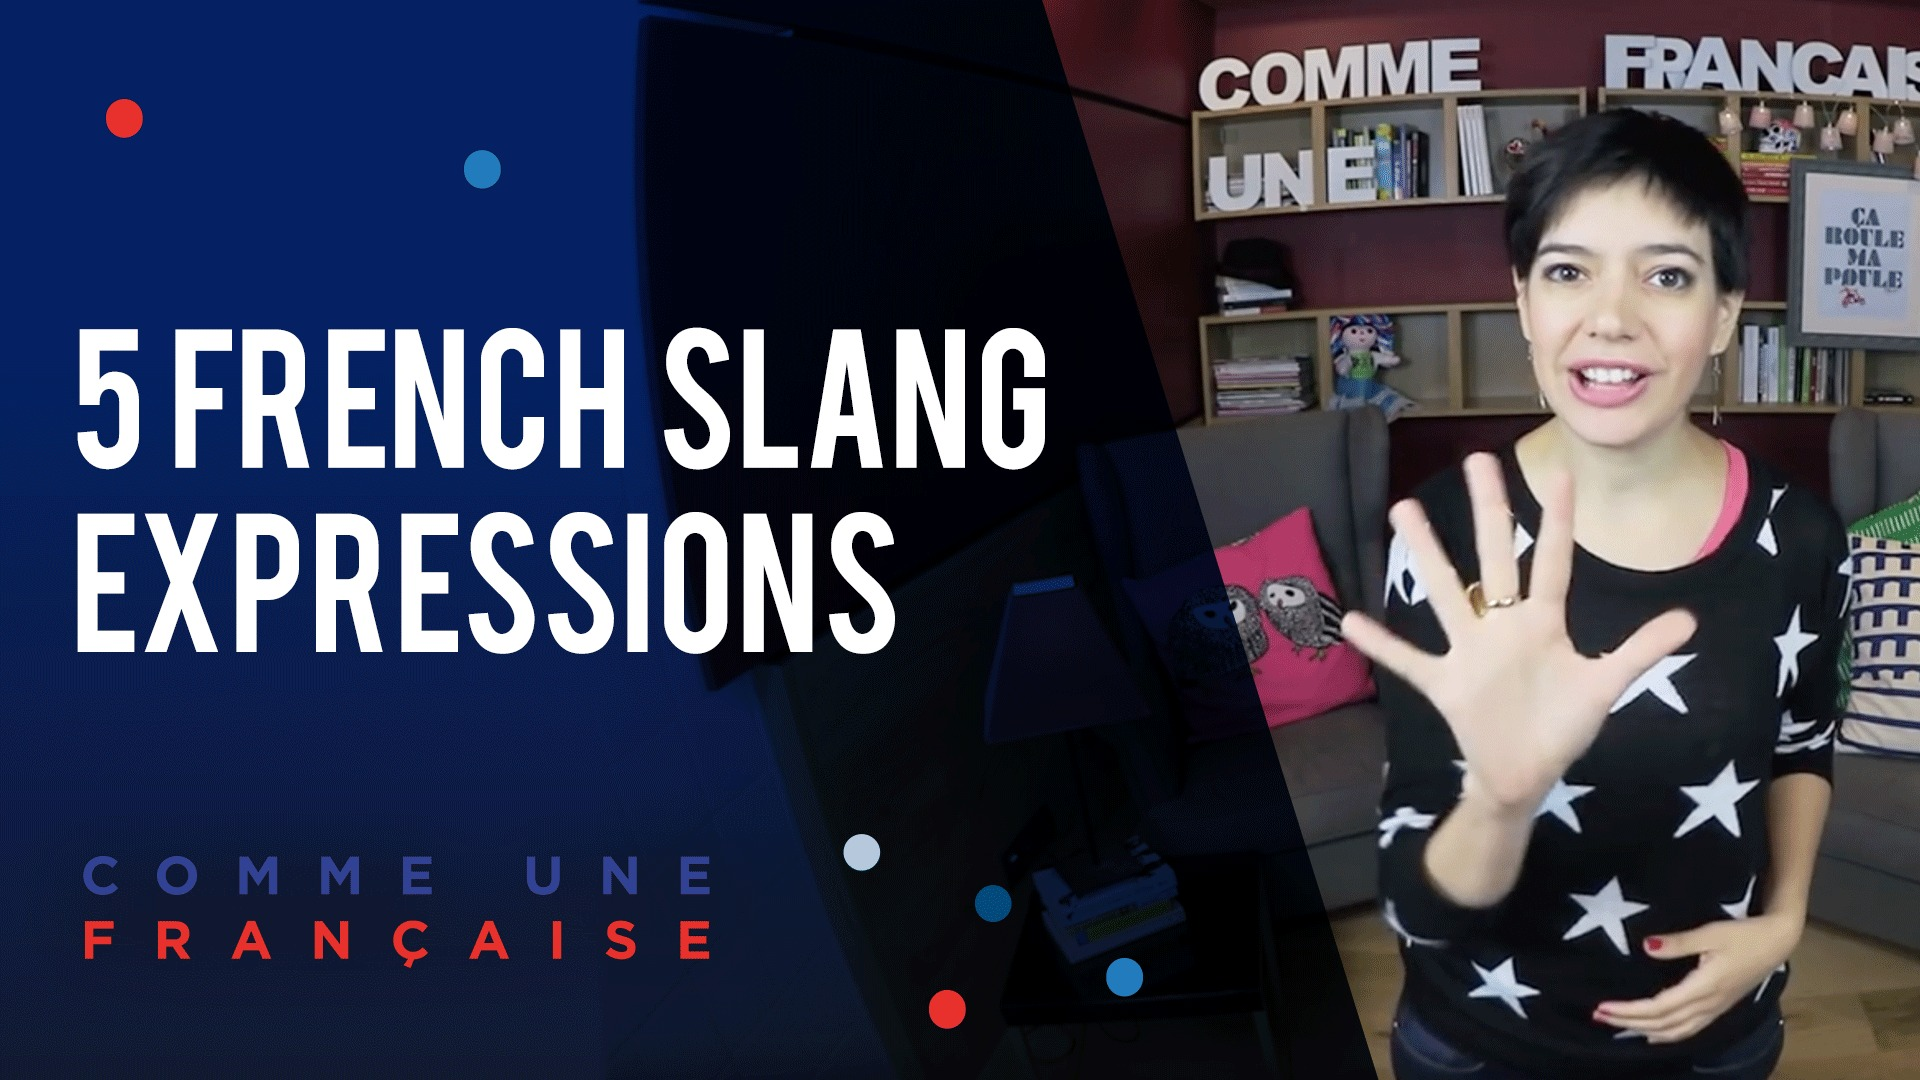 41 Ans Mes Vacances Sans Mon Mari Top 5 Favourite French Expressions In Slang By Géraldine Comme